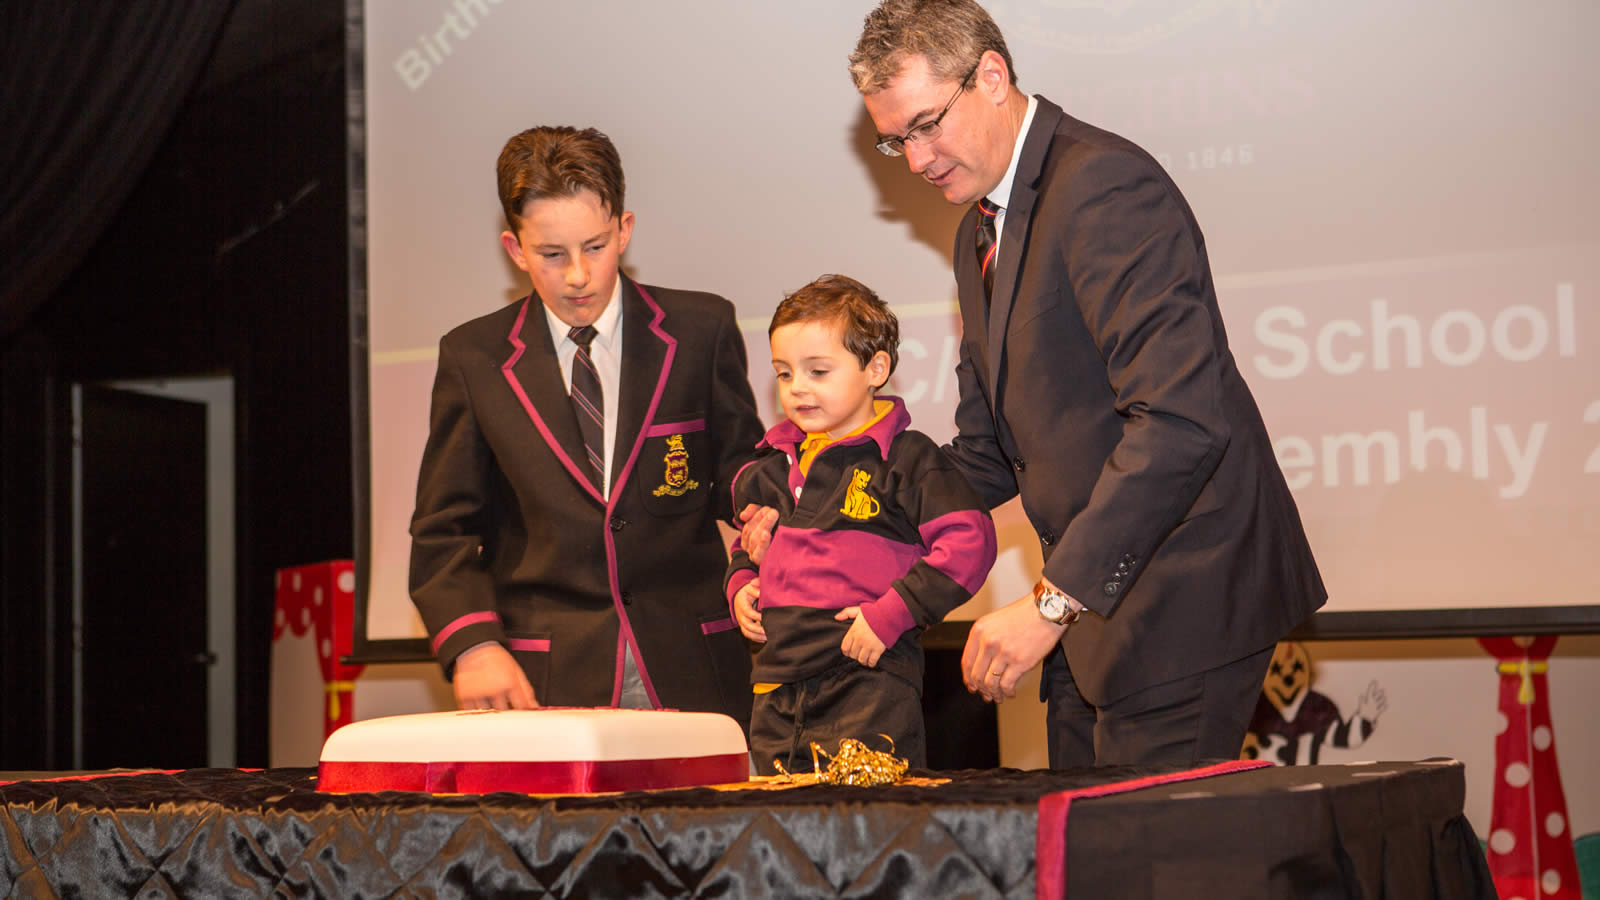 Lloyd Lucas, Aleksandar Stanojevic and Mr Gene Phair cutting the Anniversary Cake. (large)